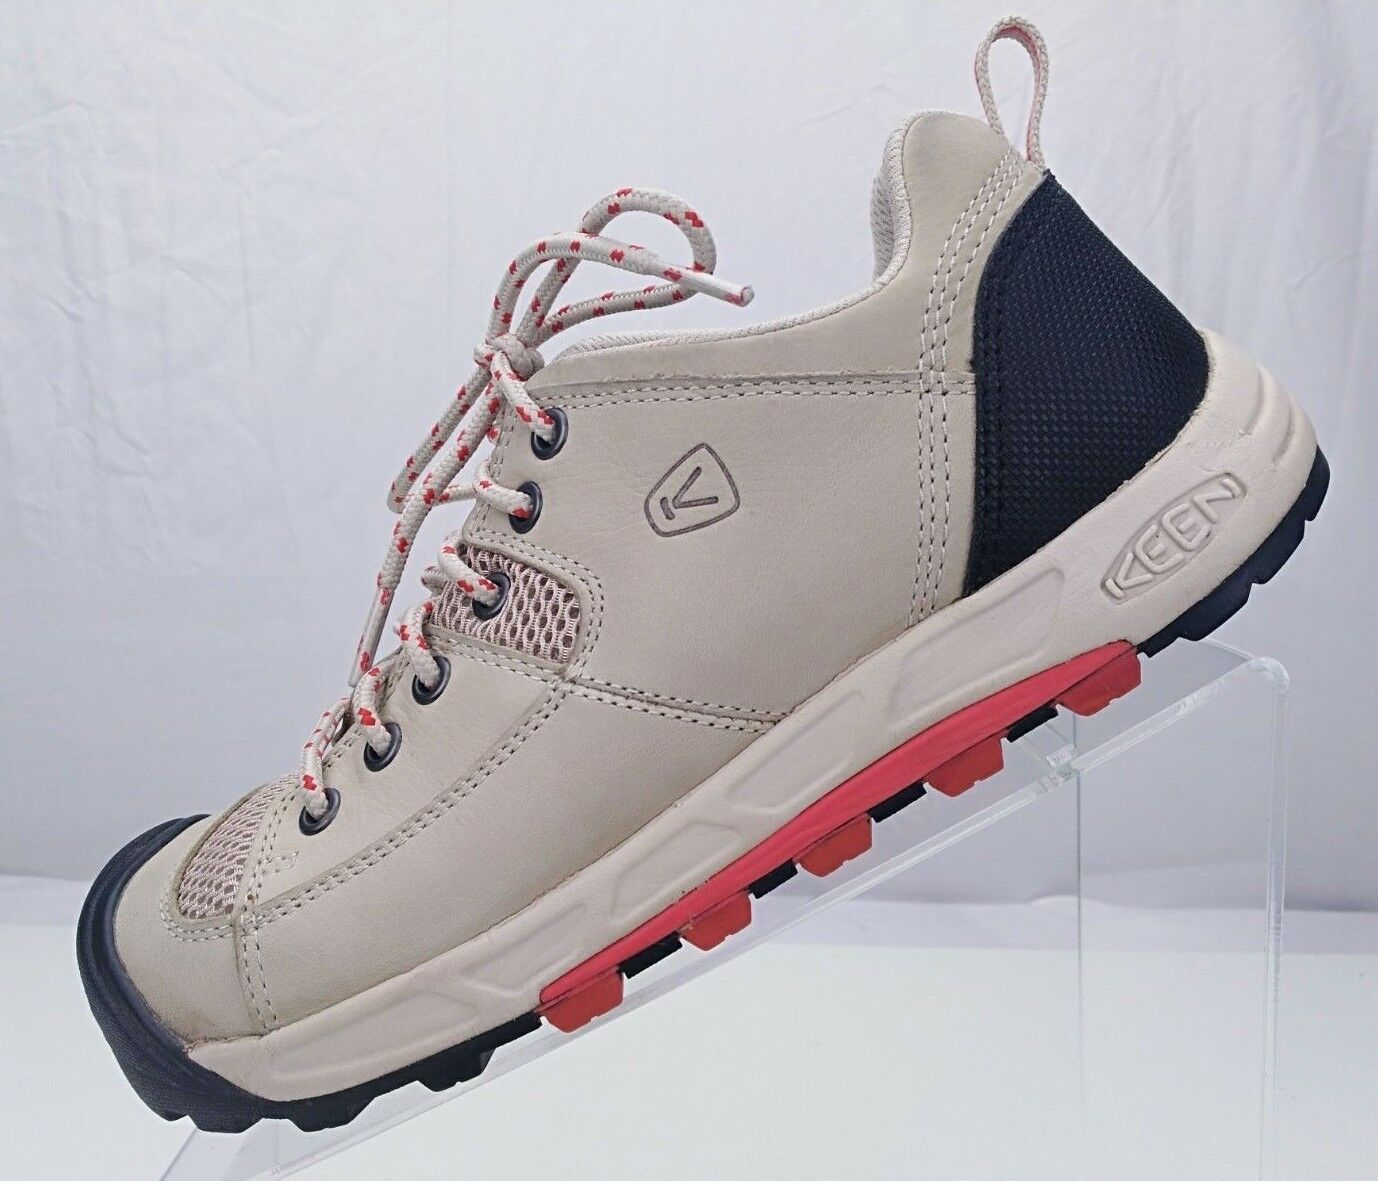 Keen Hiking Boots - Beige Lace Up Classic Trail Hiker Sneakers Women's Size 8